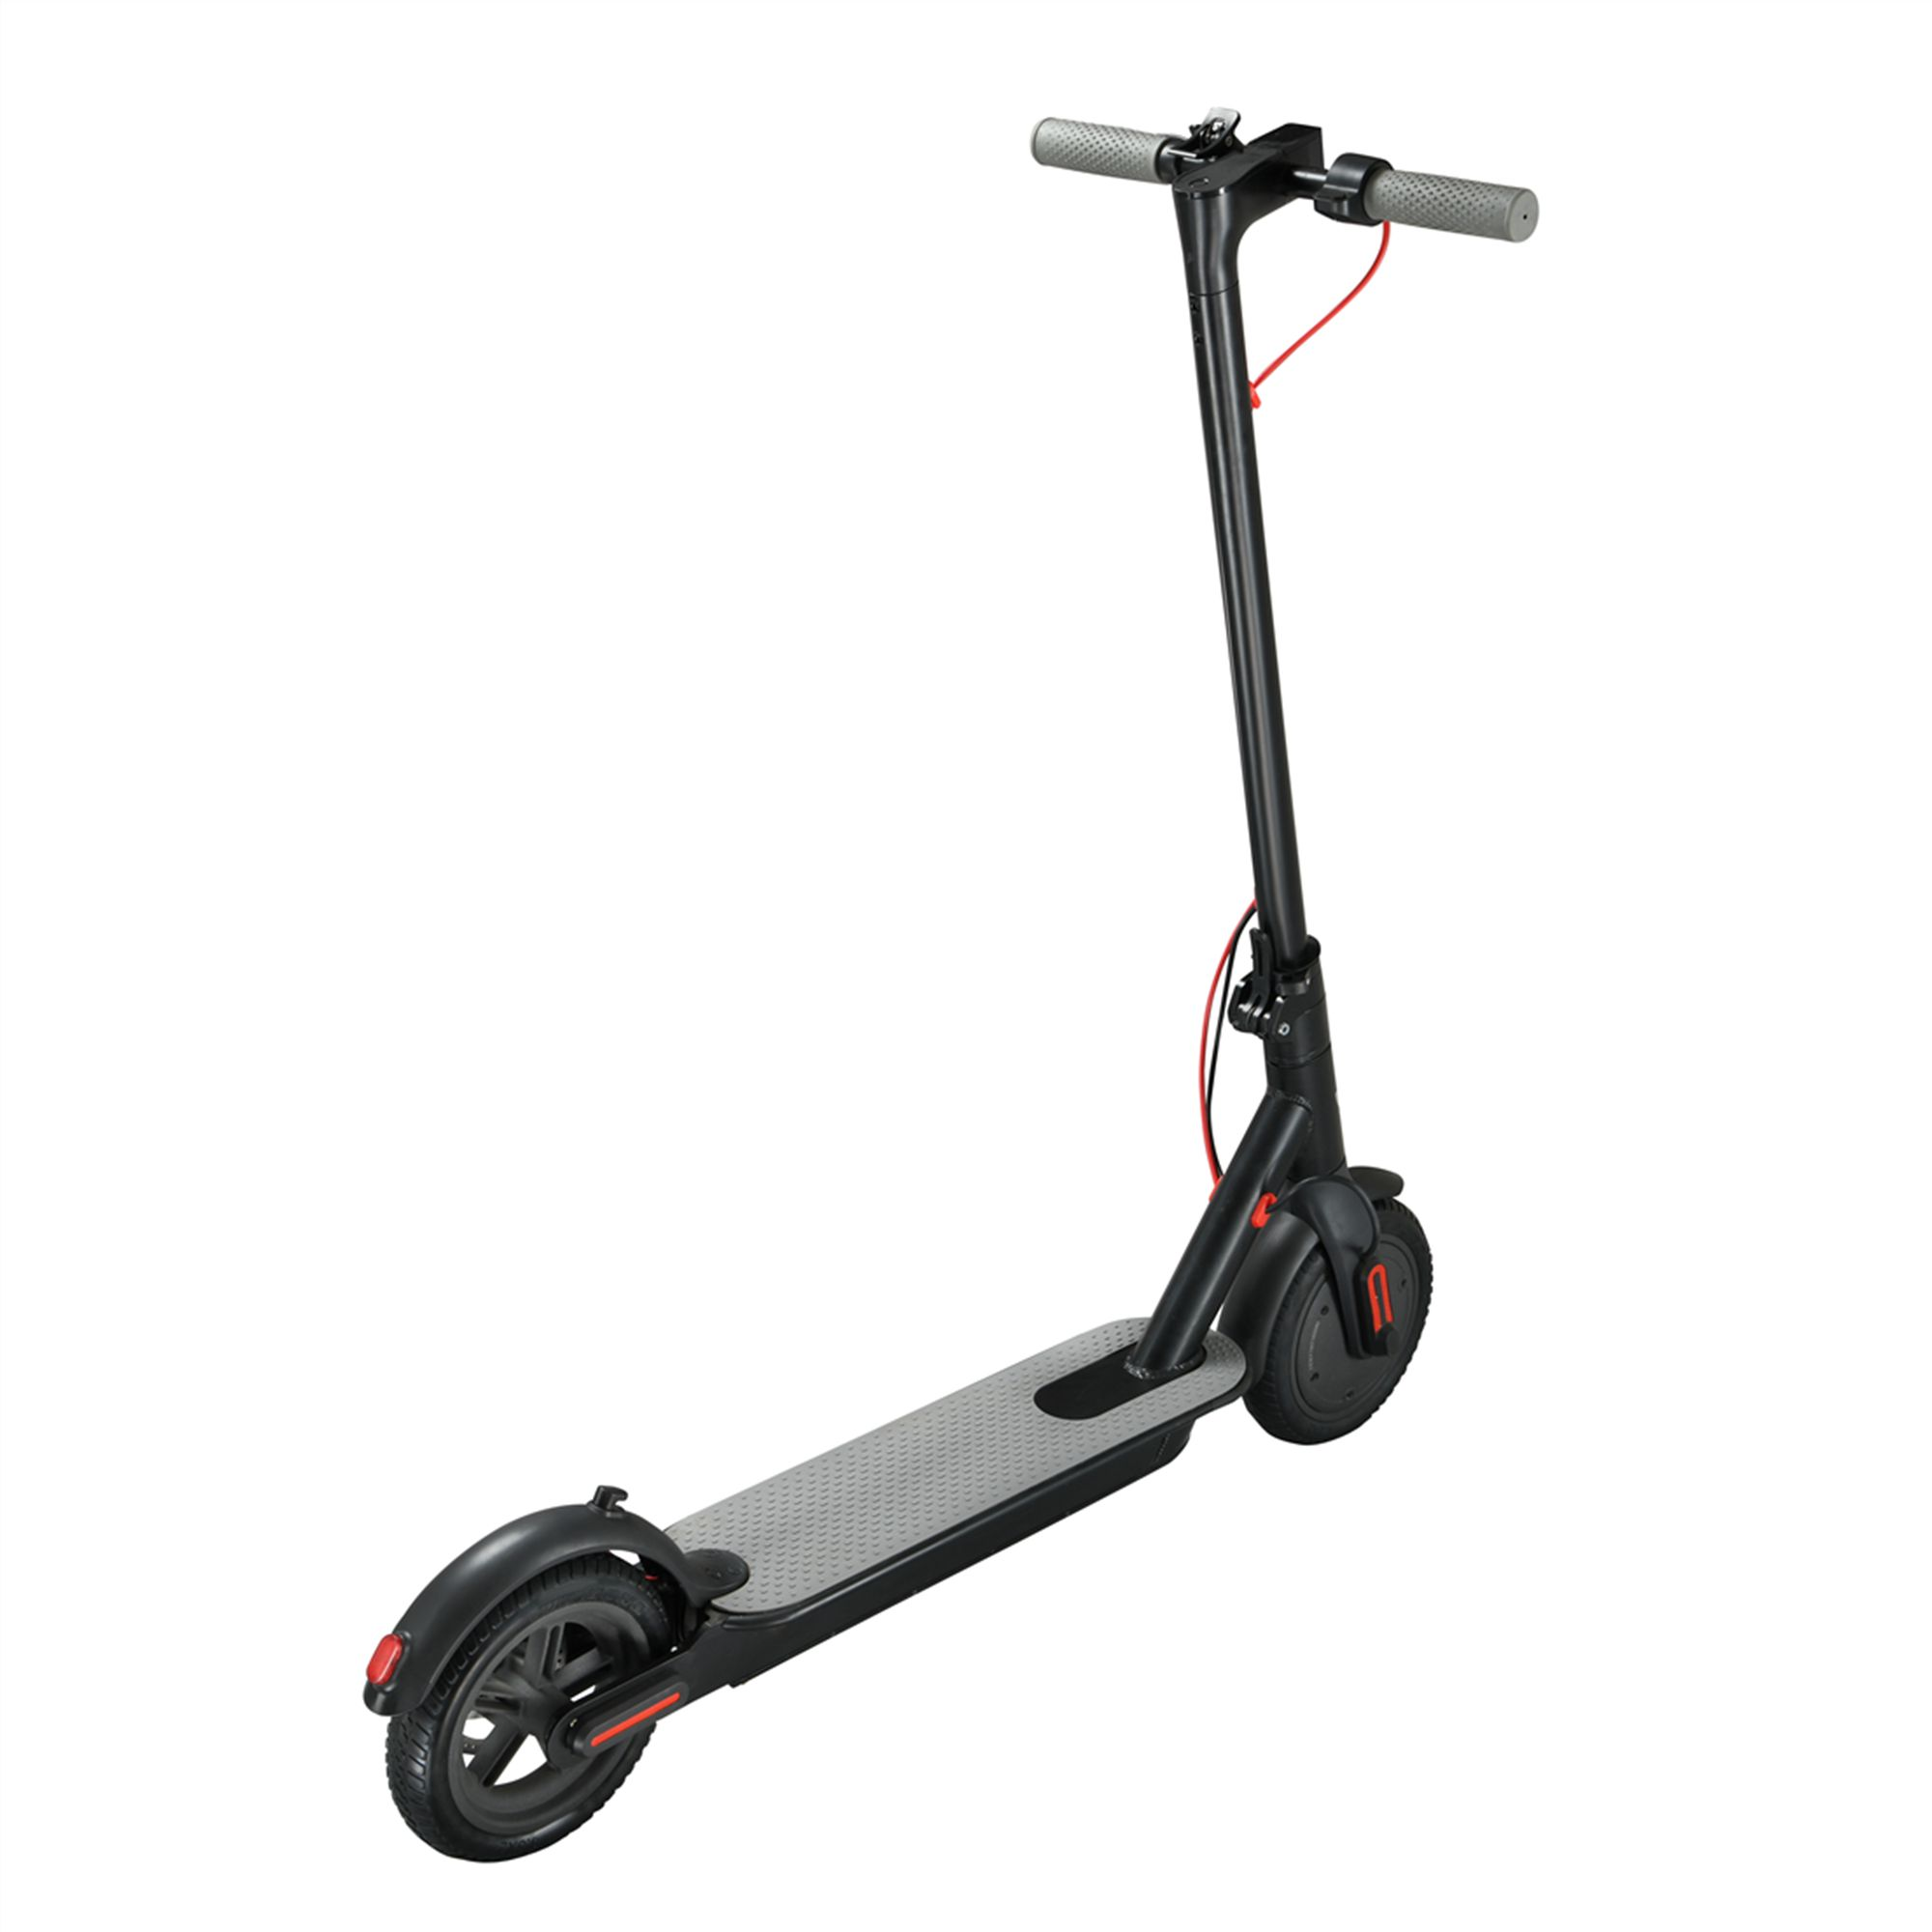 CF-D8.5-1A 36V 250-350W city foldable electric scooter